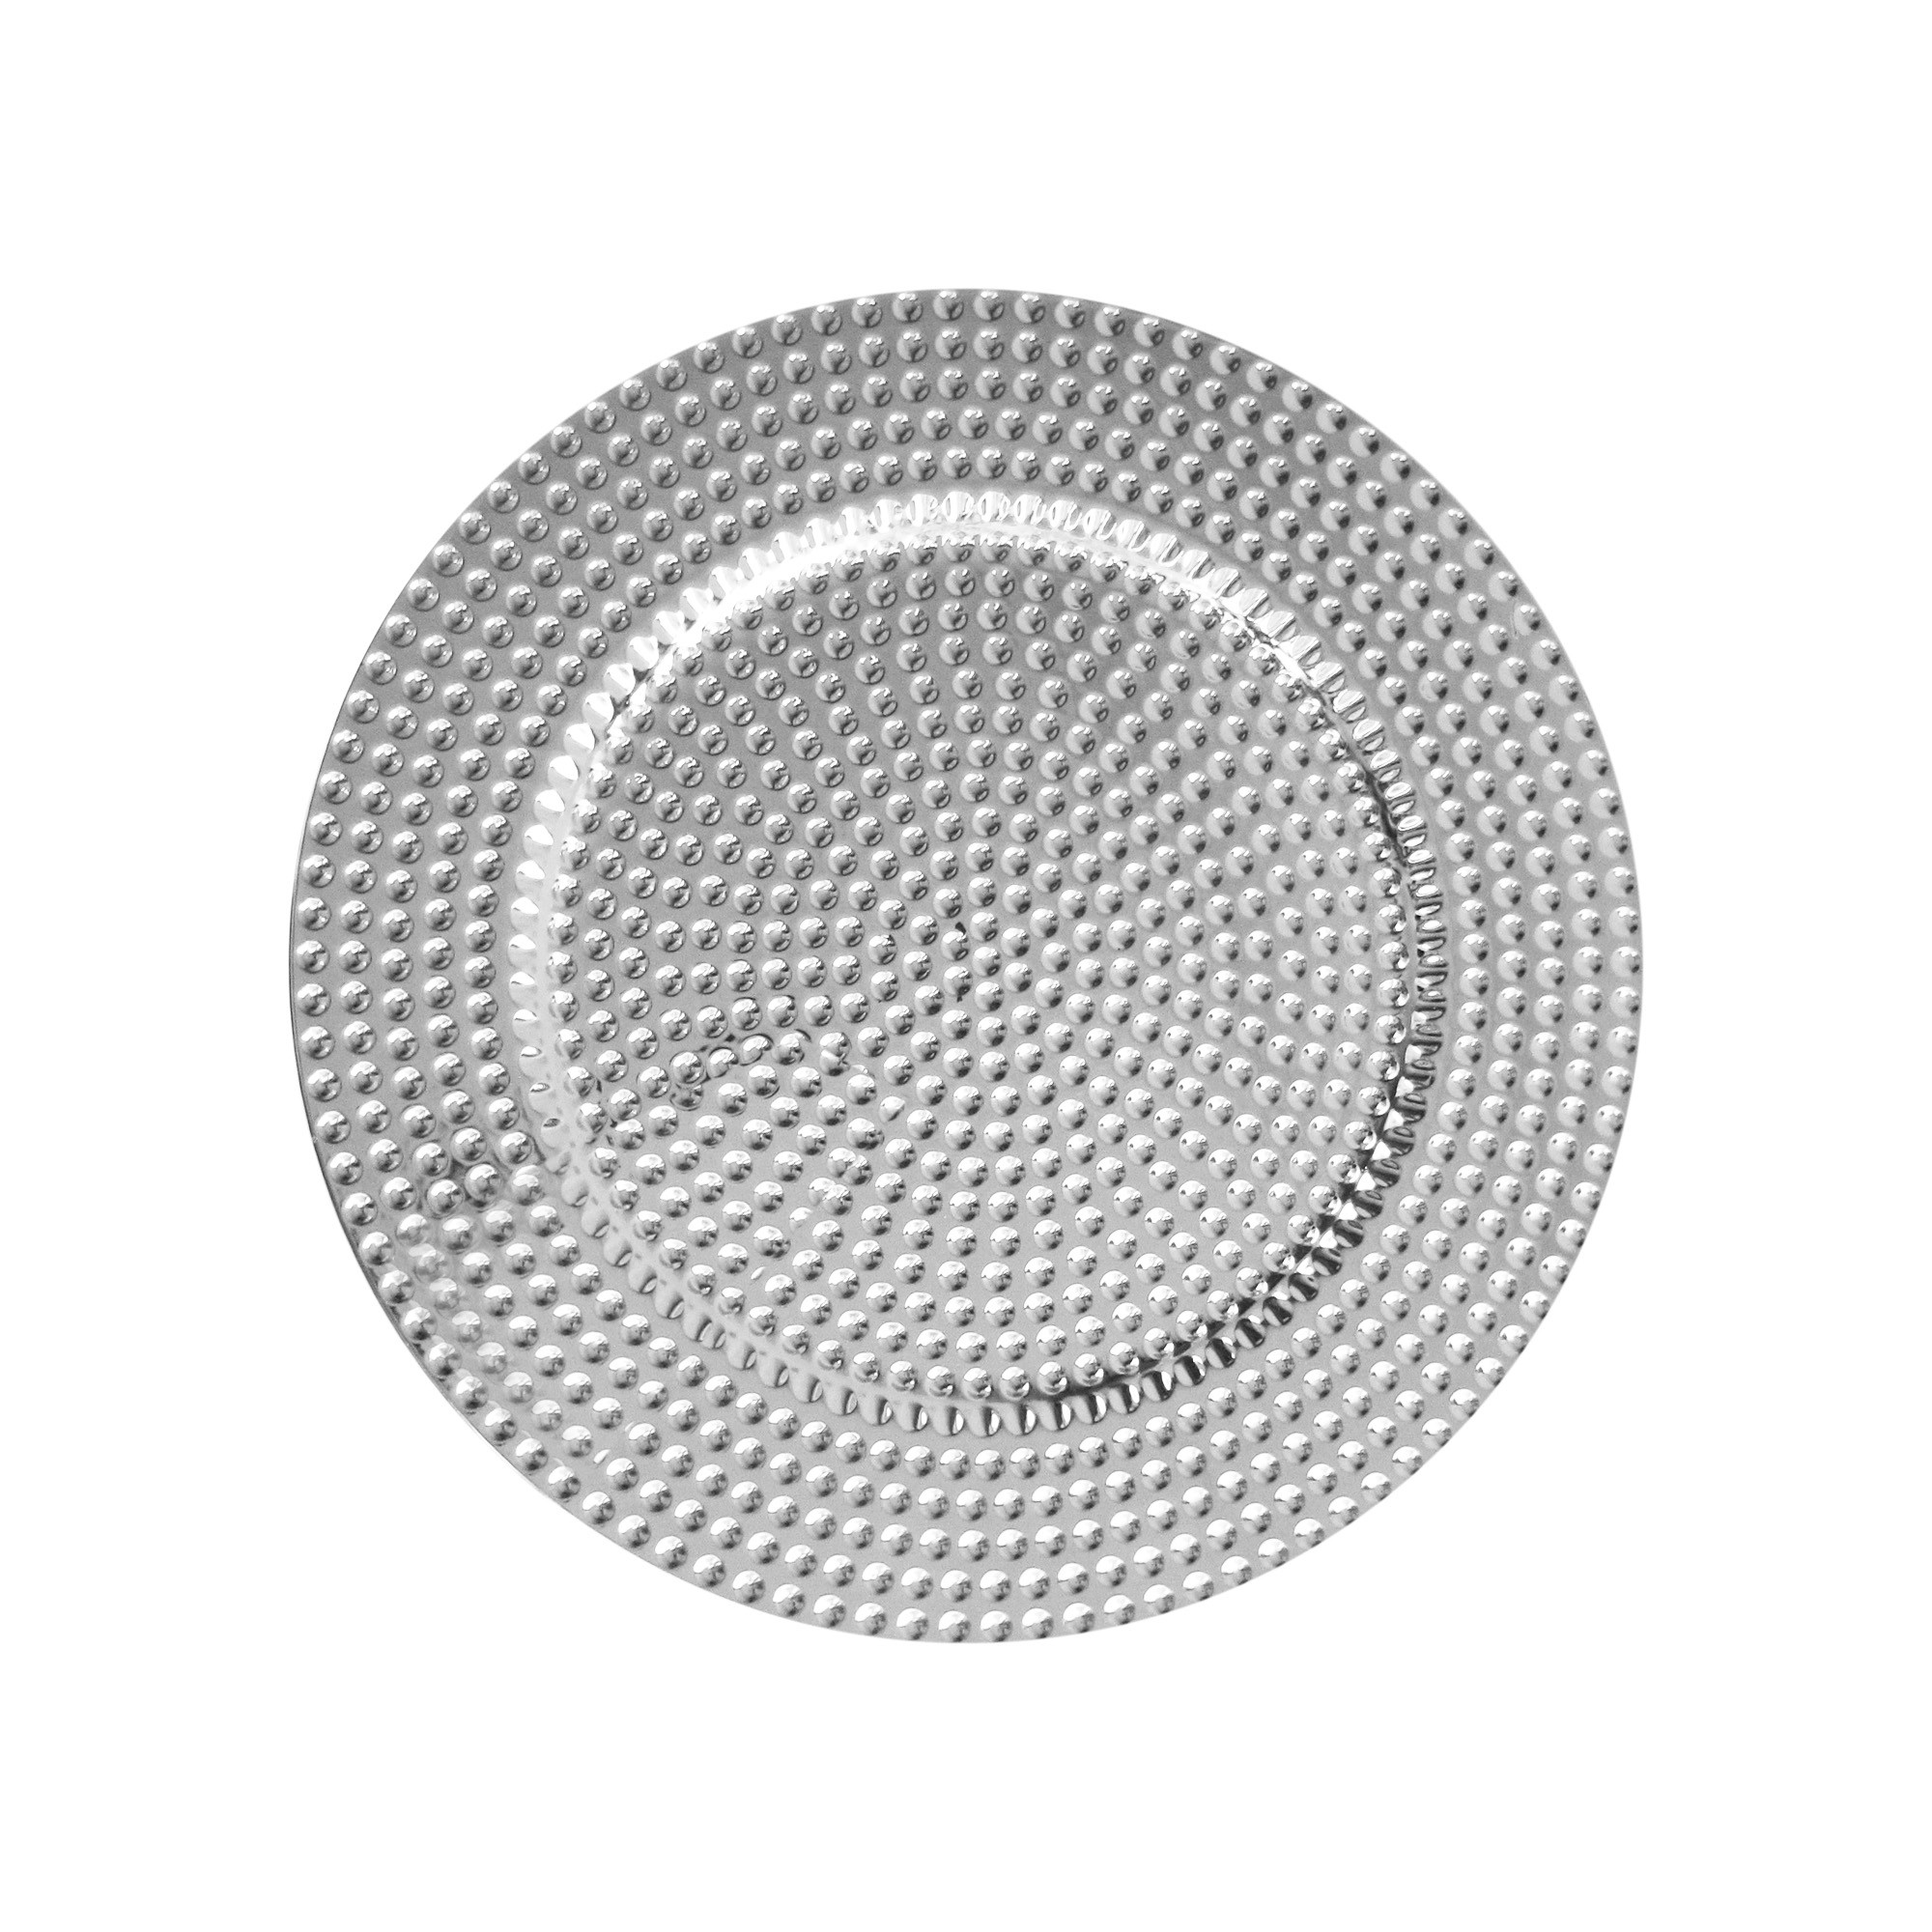 "Jay Import 1270276-4 Beaded Silver Melamine 13"" Charger Plate"